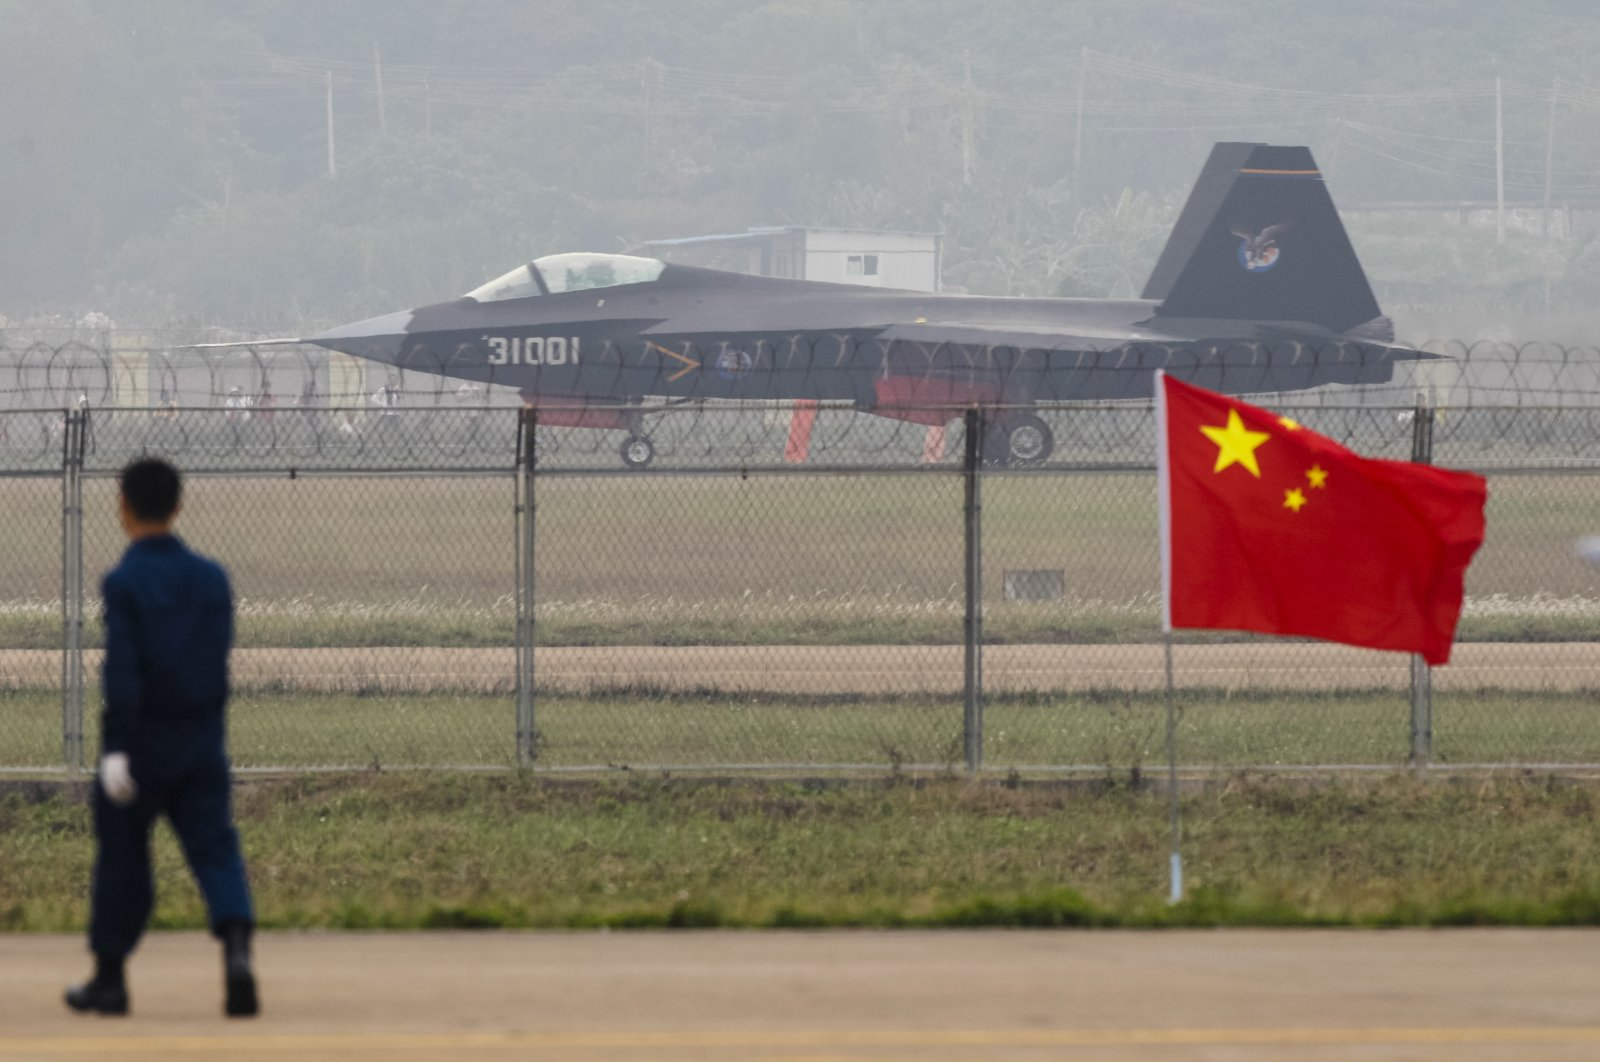 A Chinese stealth fighter jet J-31, at its first public showing at Airshow China 2014, in Zhuhai, Guangdong province, China, Nov. 11, 2014. (Shutterstock Photo)